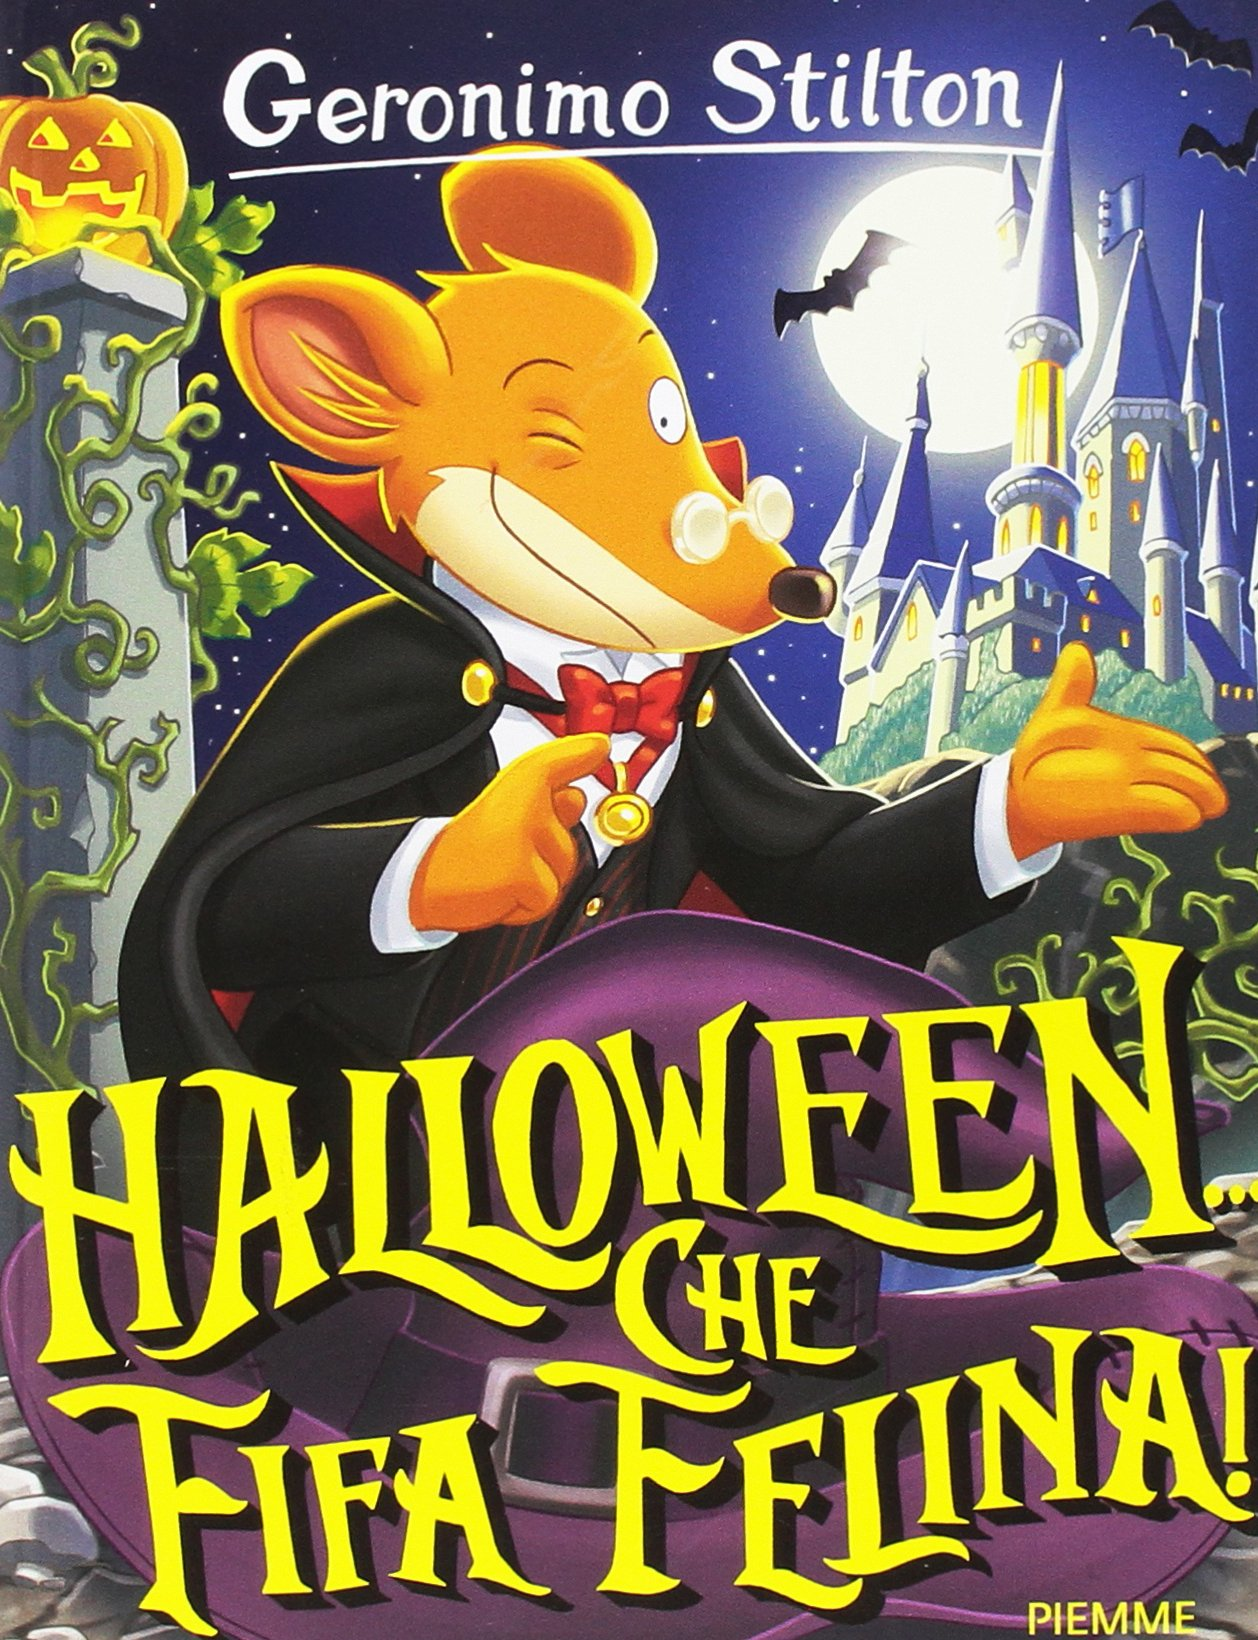 geronimo-stilton-halloween.jpg